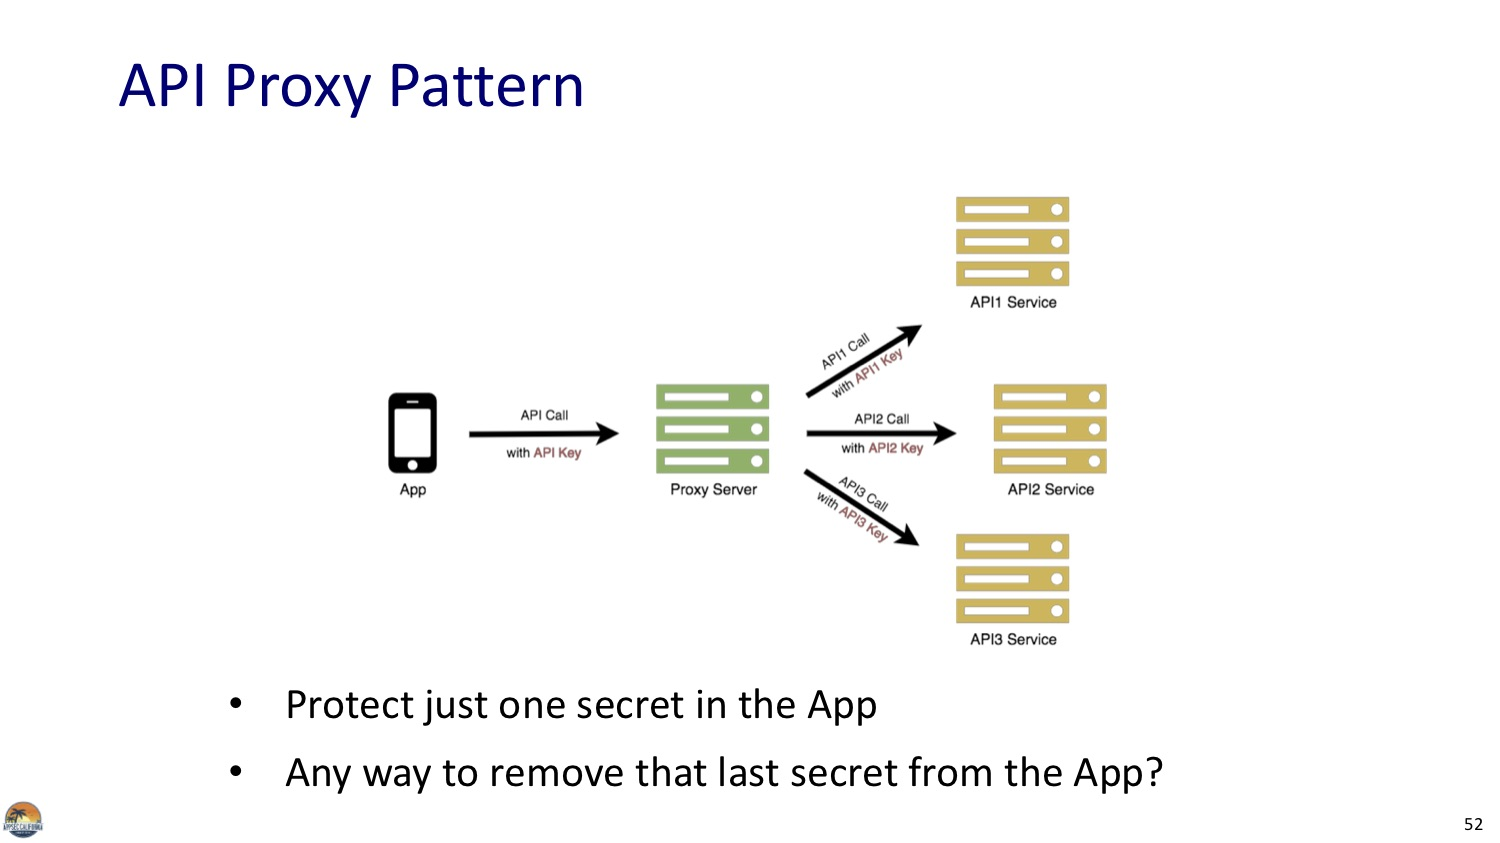 API Proxy Pattern